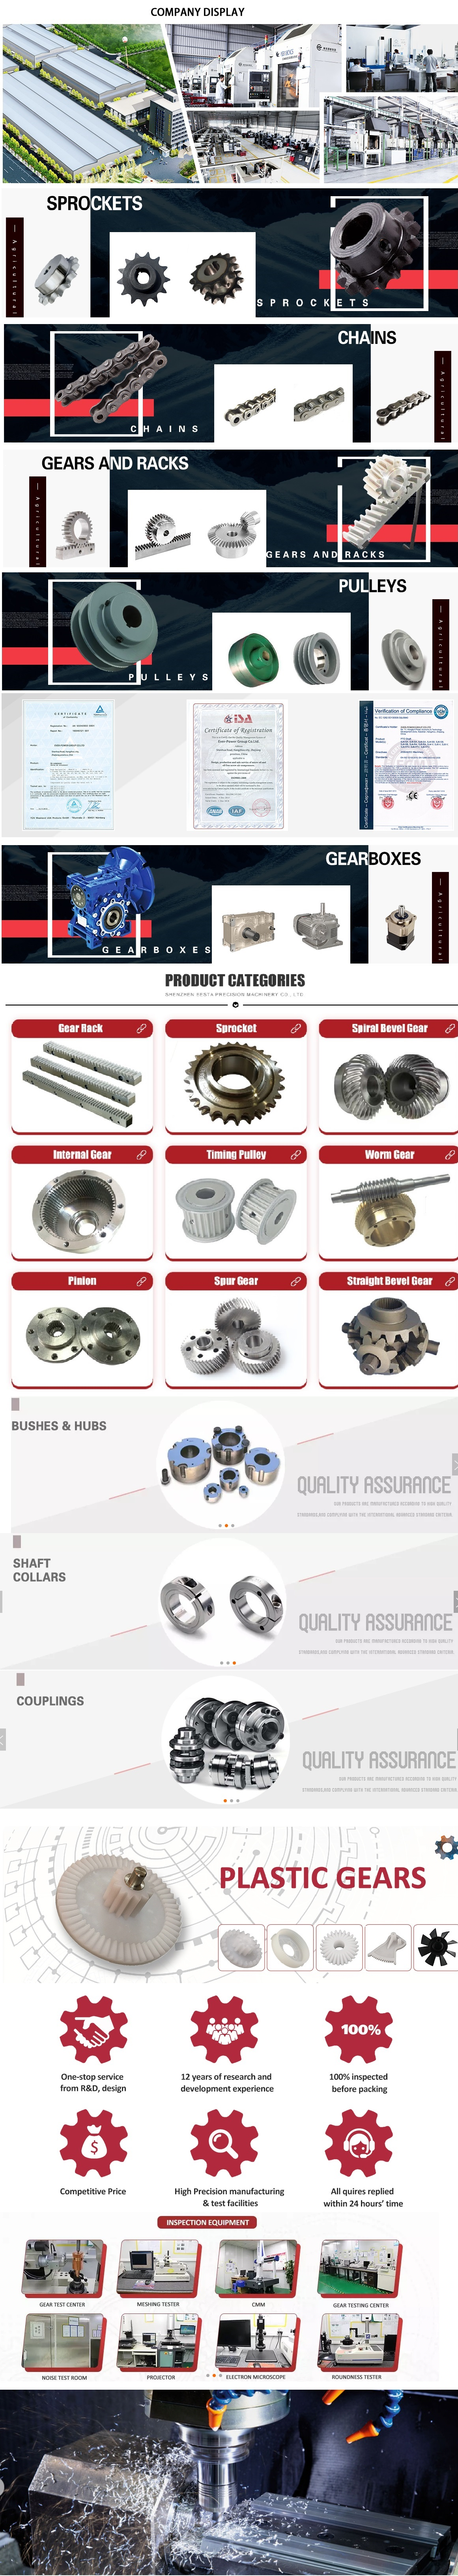 China manufacturer & factory supplier for Factory  in Recife Brazil  OEM Heavy Duty Tractor Parts Drive Shaft Yoke With high quality best price & service